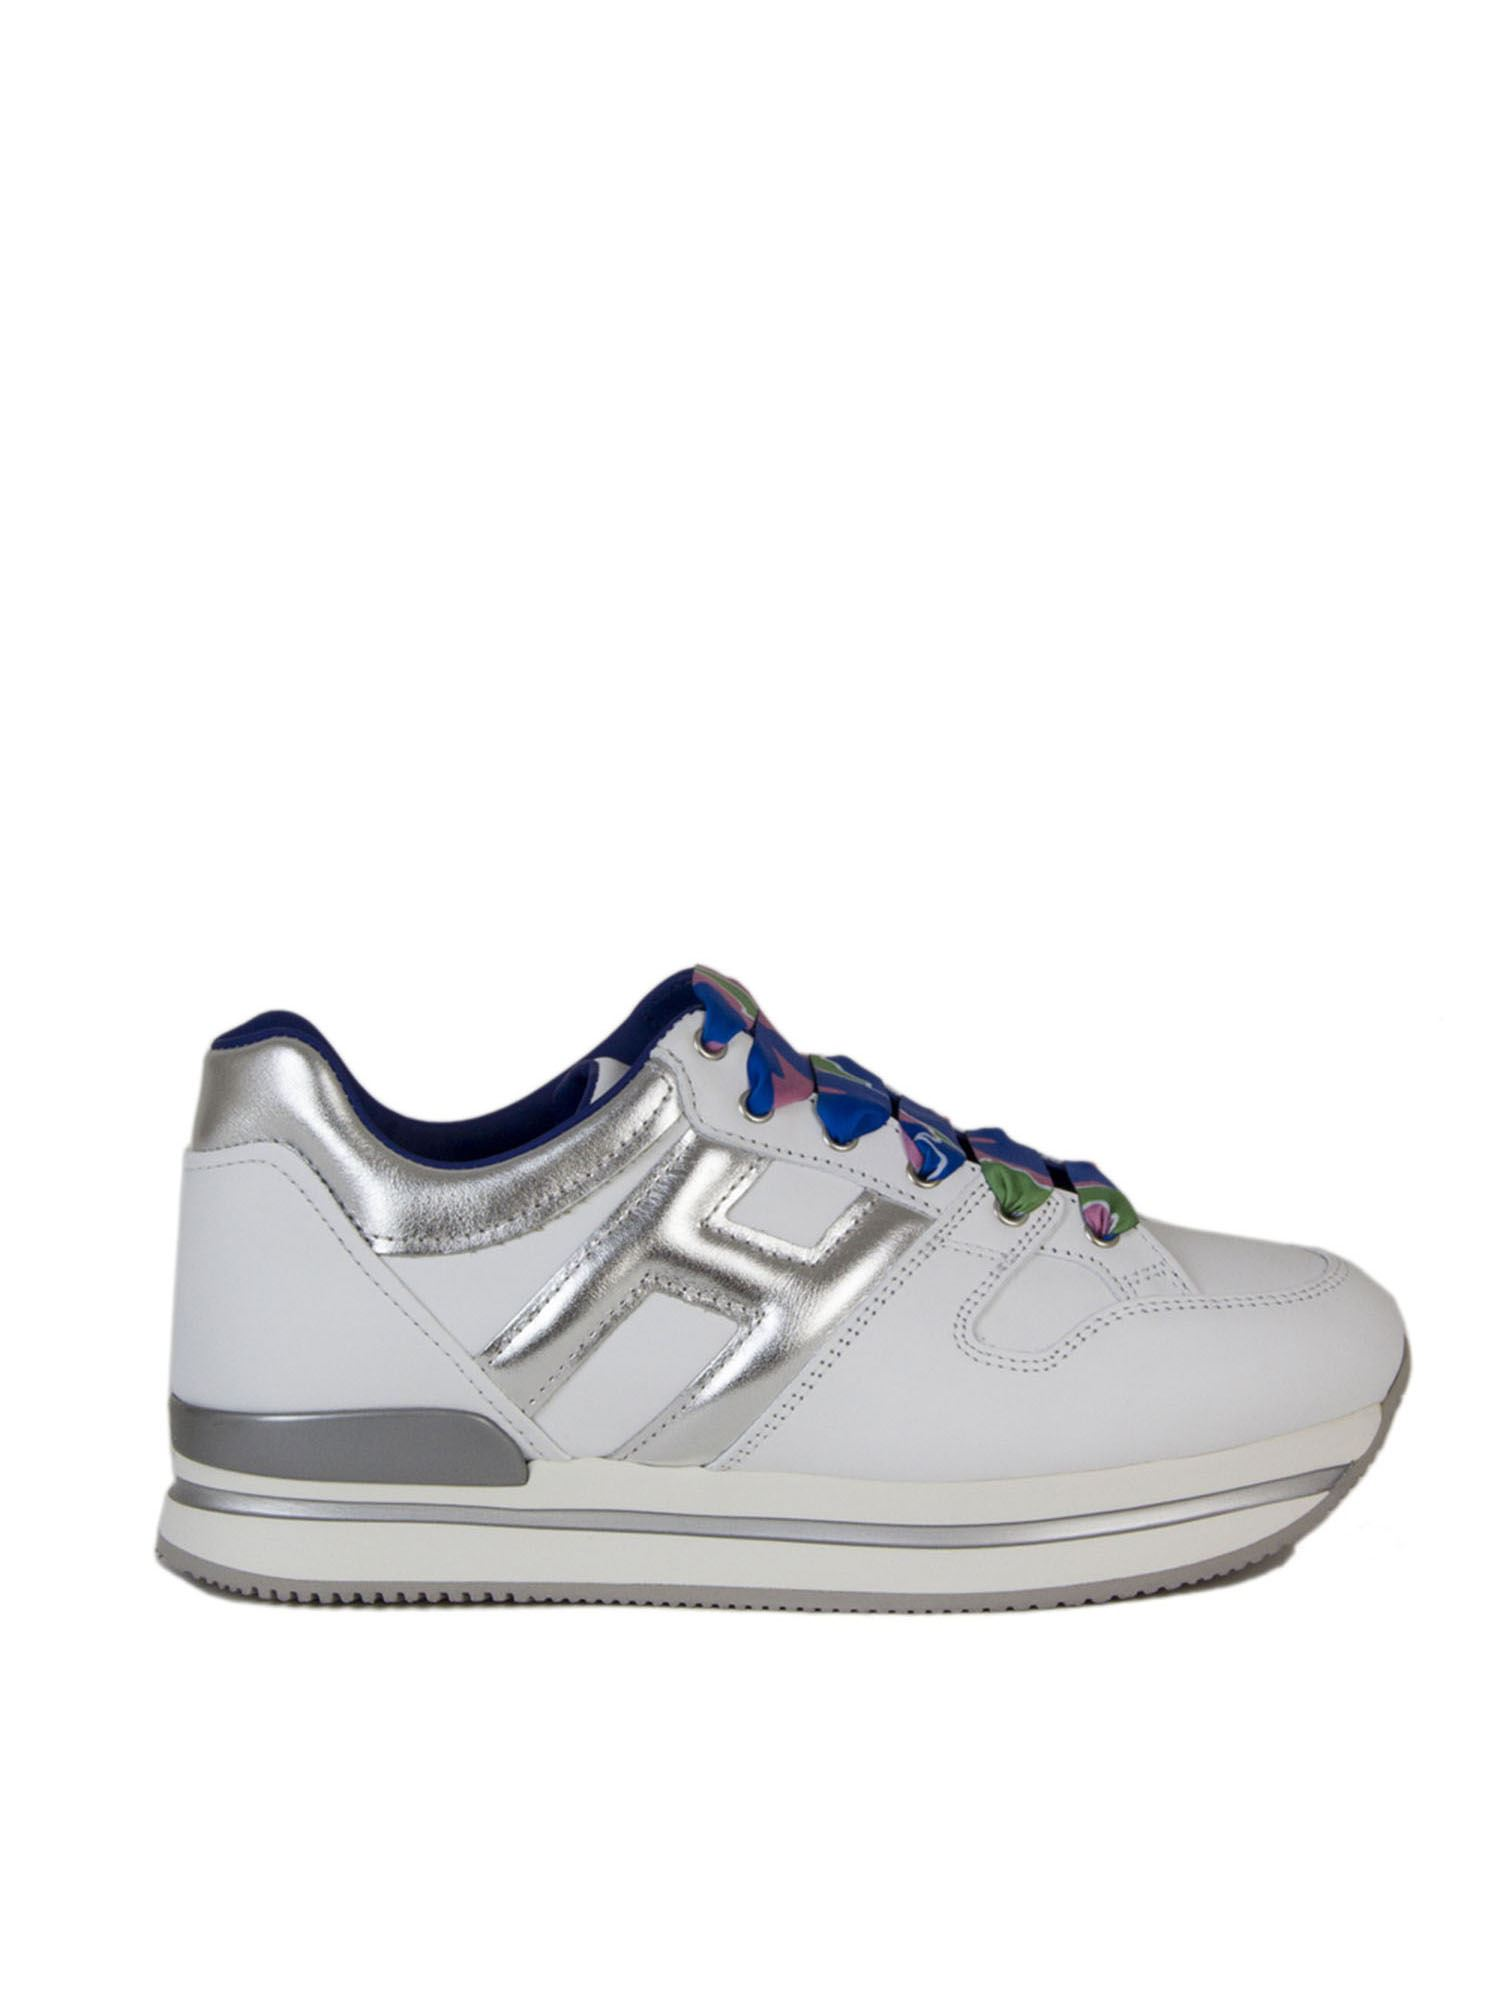 Hogan H222 SNEAKERS IN WHITE AND SILVER